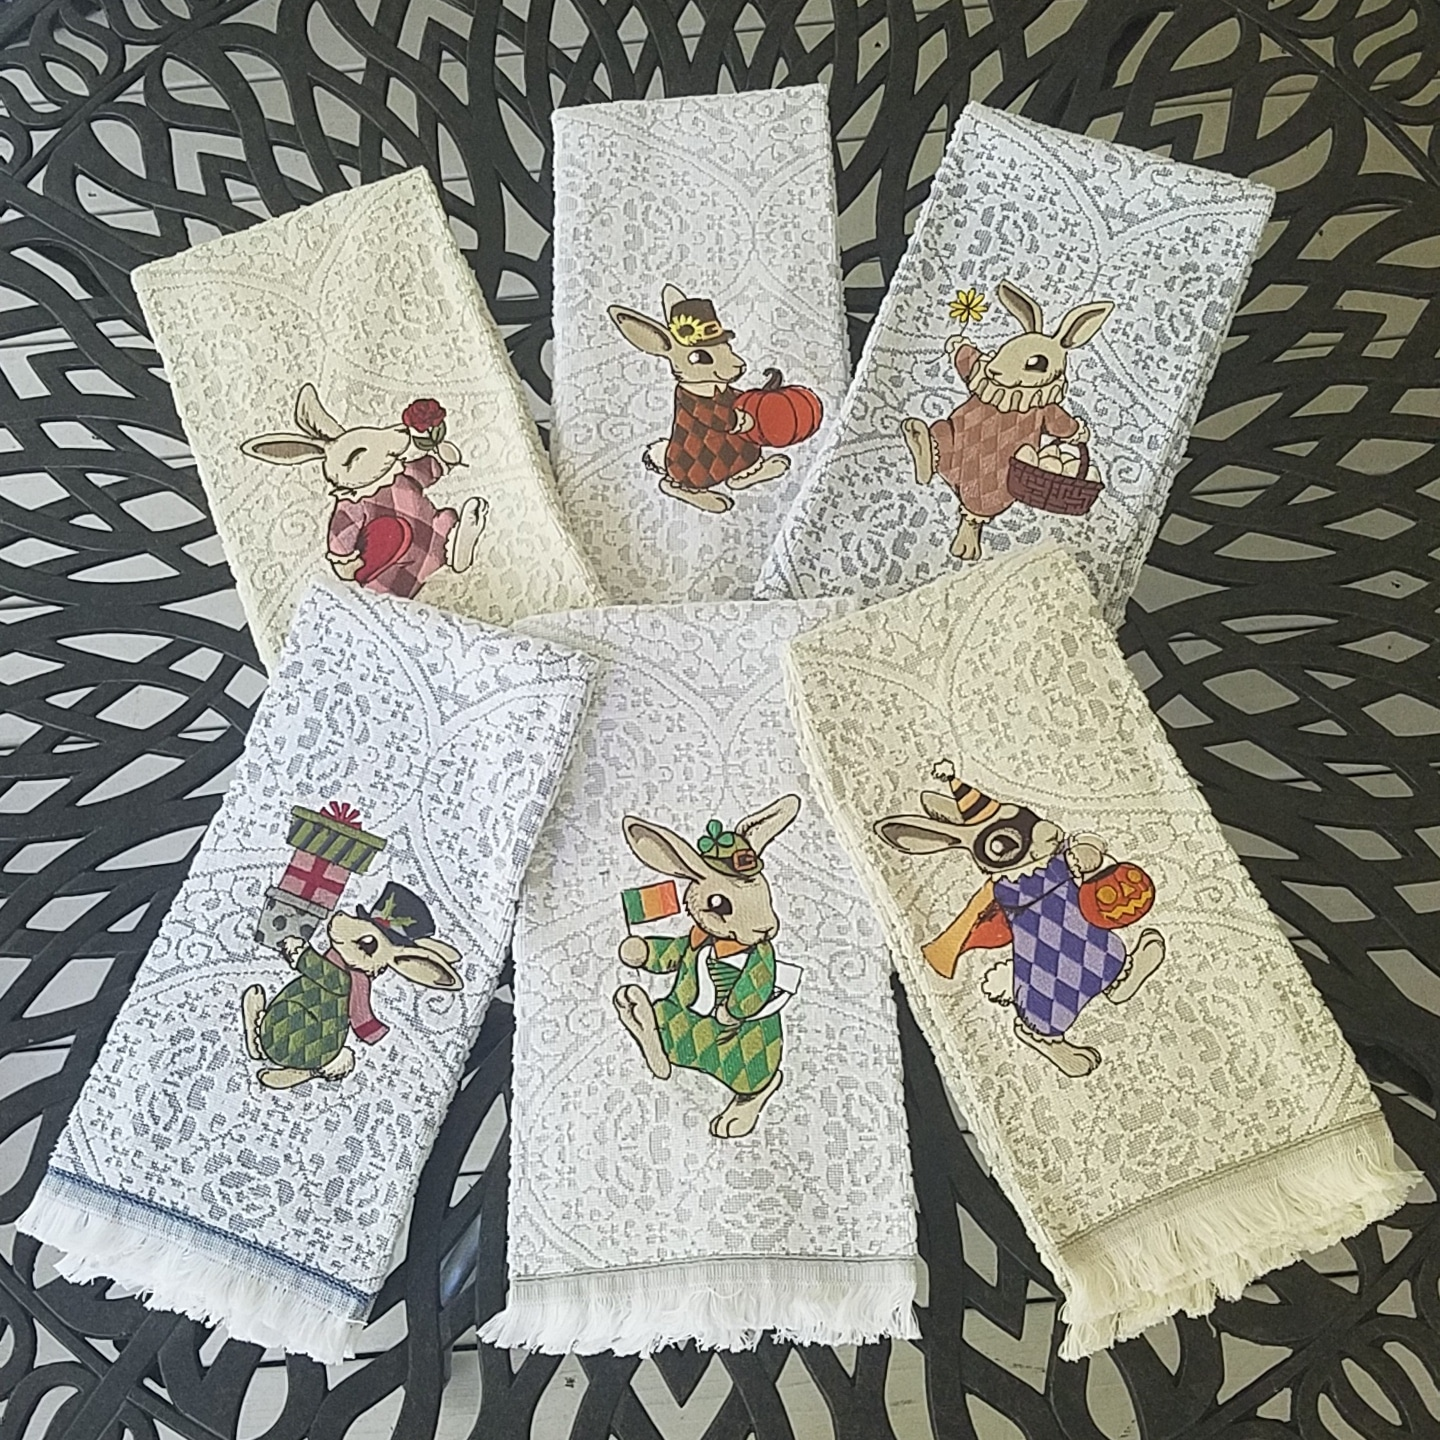 Embroidered Terry Cloth Hand Towels: Vintage Bunny Linen Hand/Guest Towels Collection